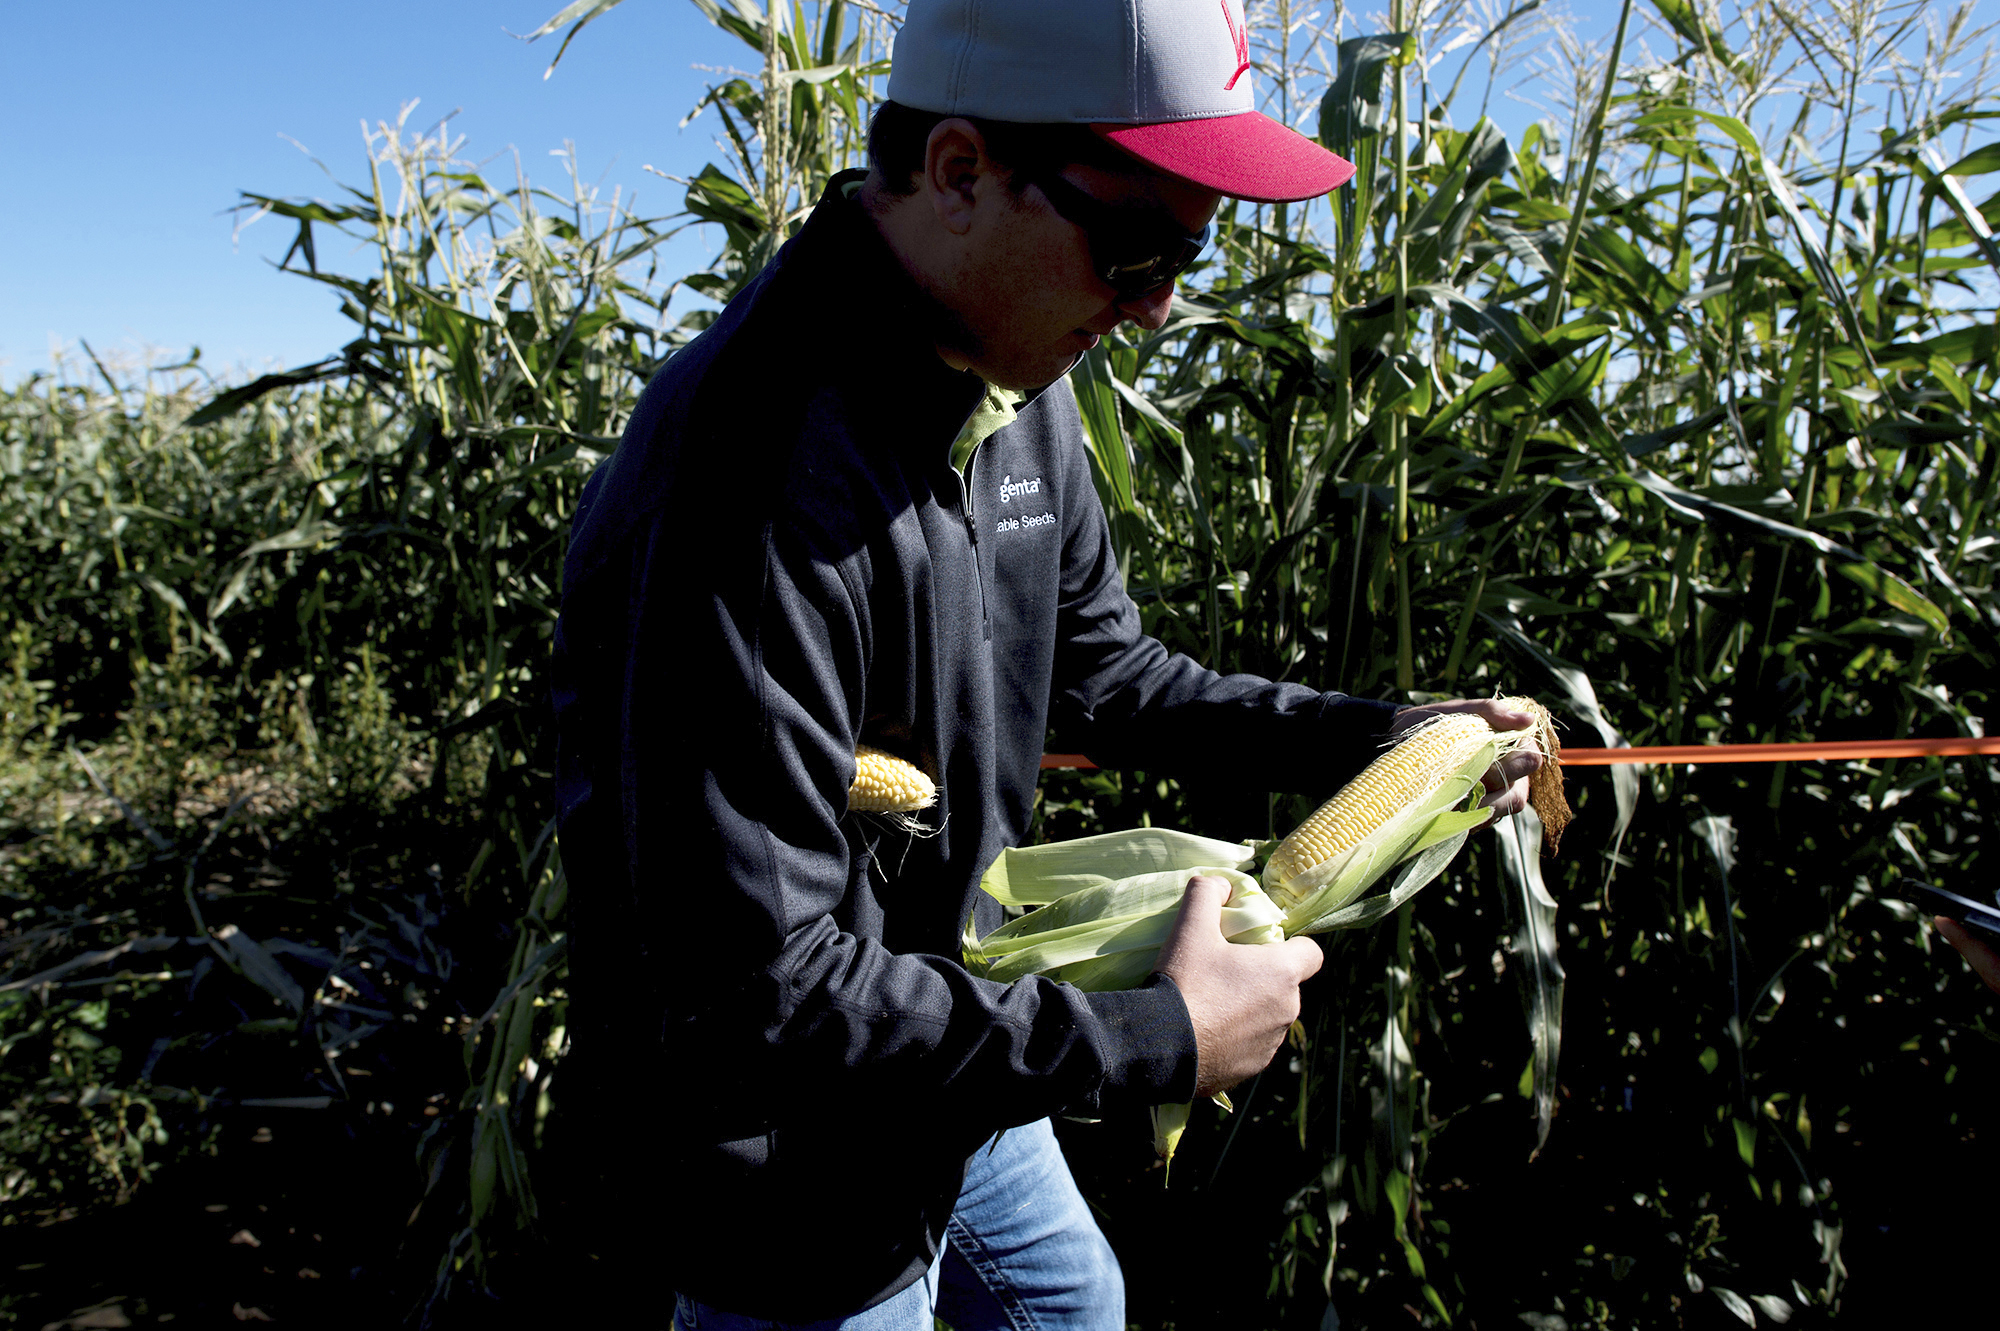 Producer Prices FILE - In a Tuesday, Oct. 3, 2017, file photo, Kevin Moe, a Syngenta seed representative, holds an ear of sweet corn at one of the company's test sites near Pasco, Wash. On Thursday, Oct. 12, 2017, the Labor Department reports on U.S. producer price inflation in September. (Tyler Tjomsland/The Spokesman-Review via AP, File)